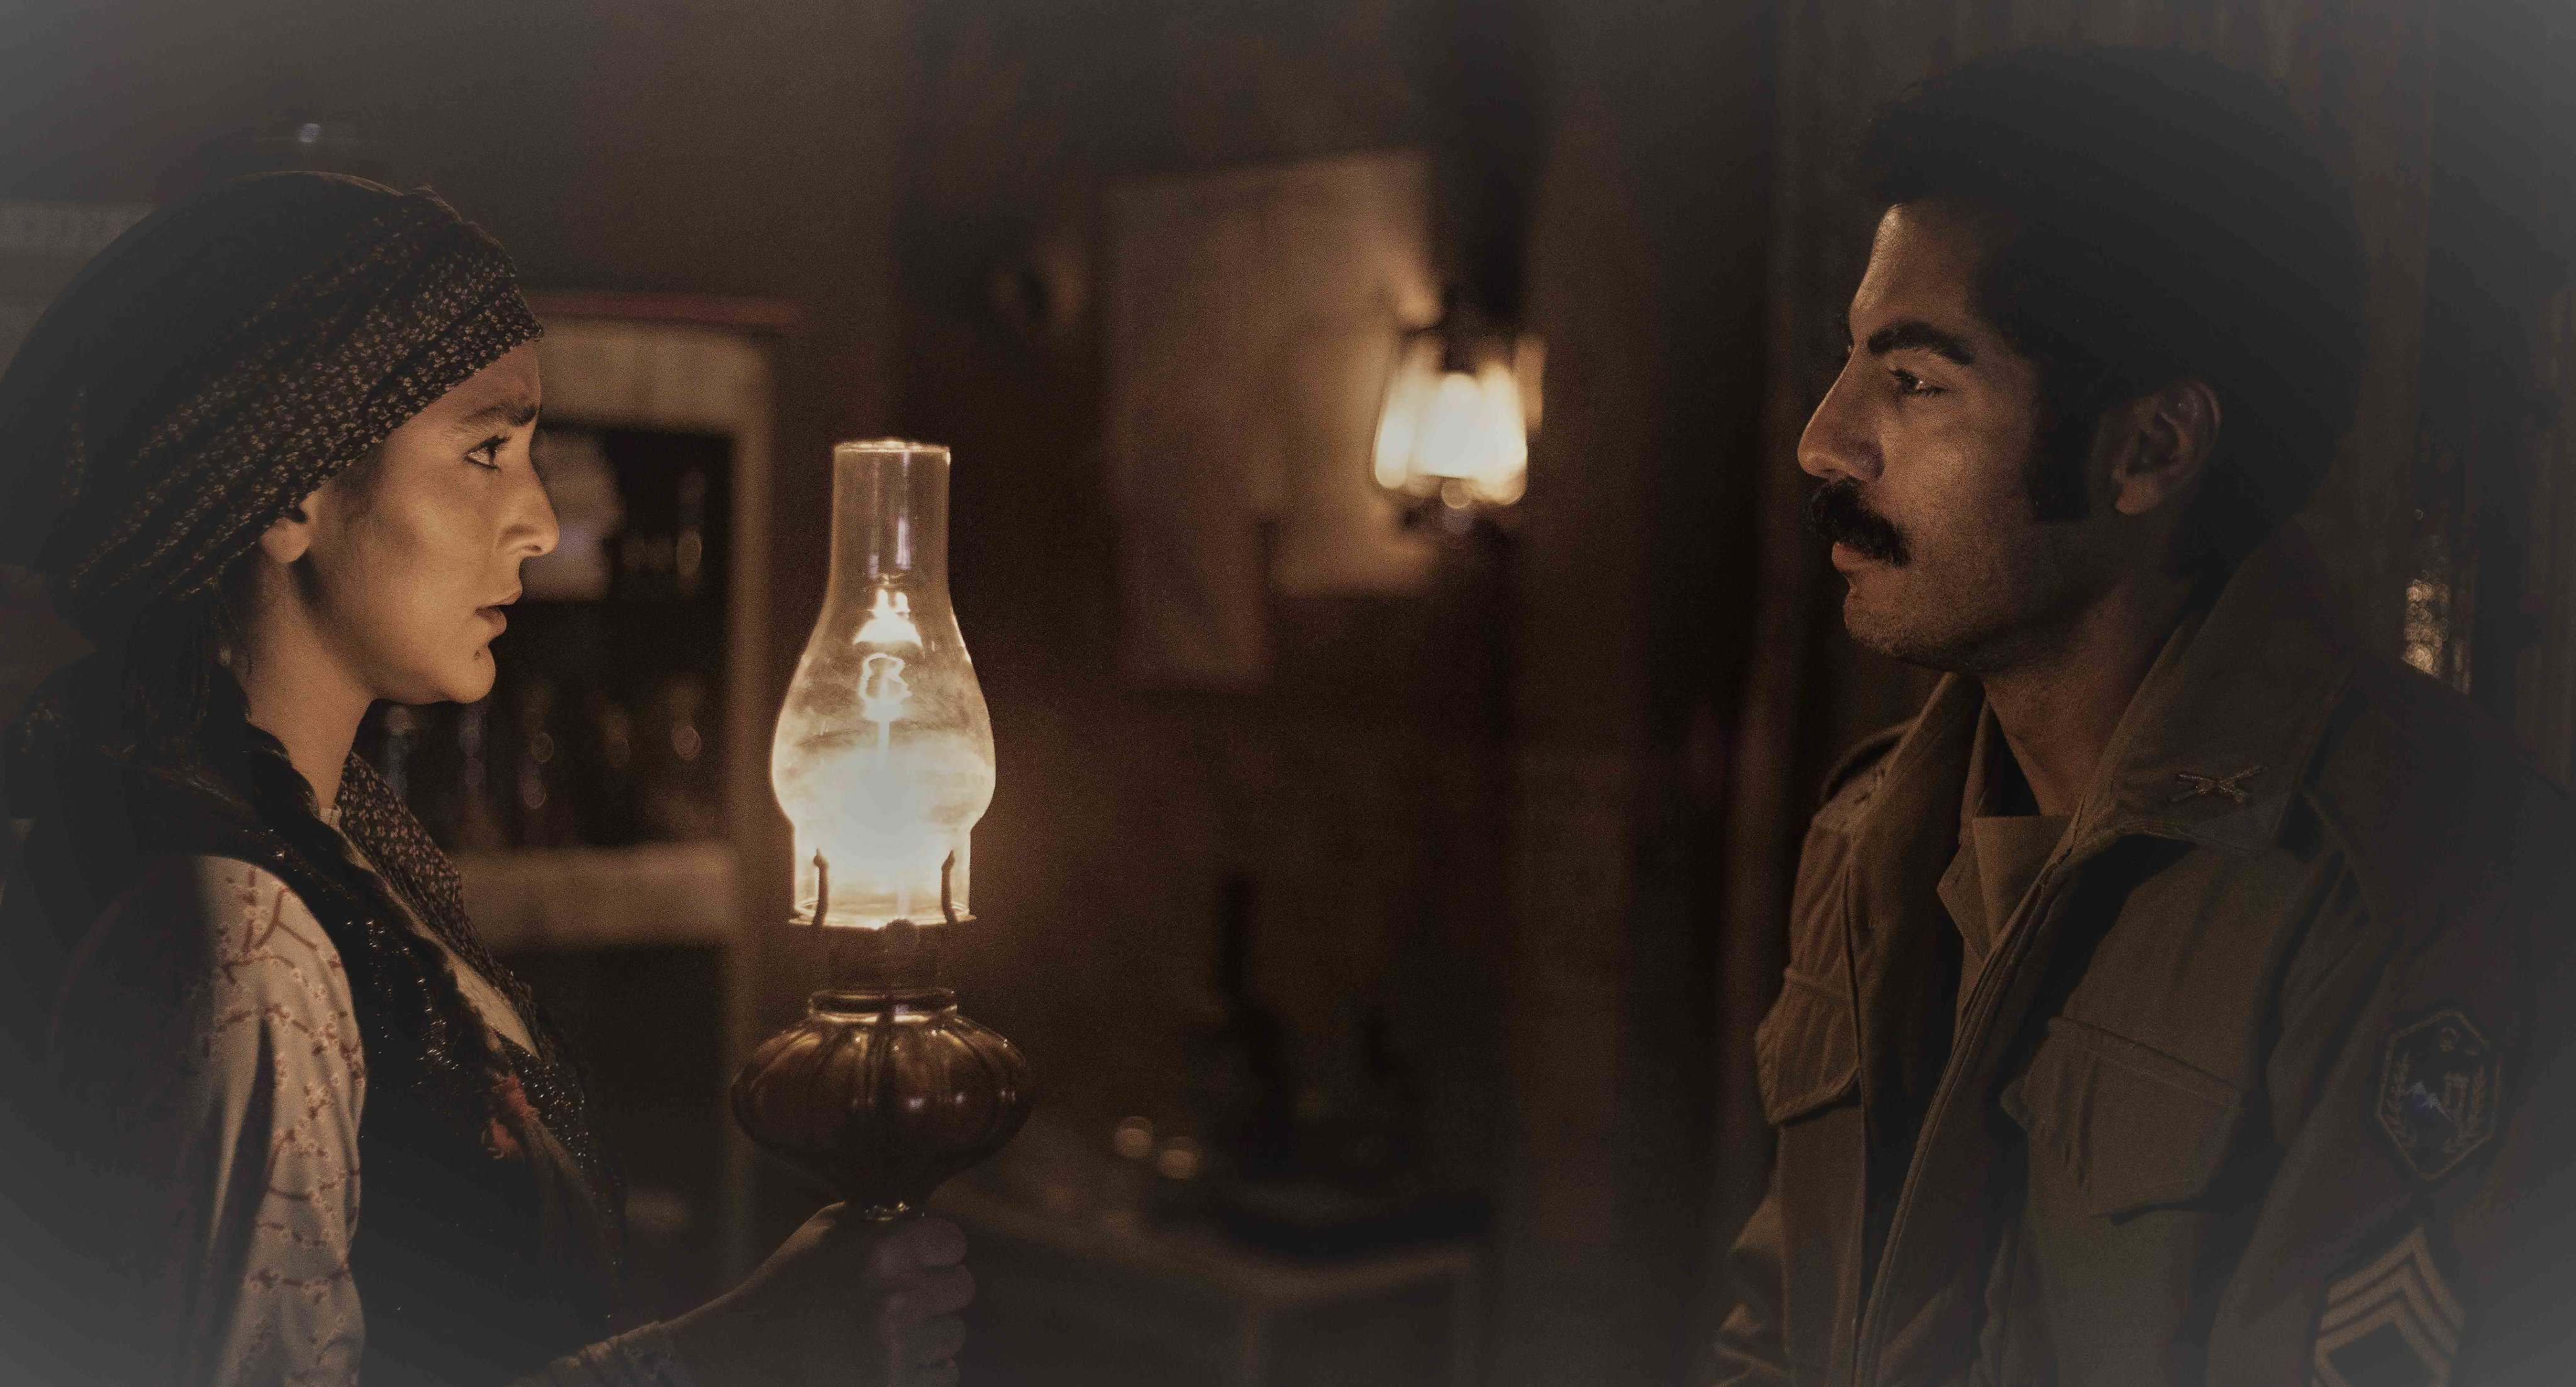 Wearing traditional Iranian clothing, Hoda Zeinolabedin holds a lantern in a dark living room while speaking to Navid Pourfaraj in a military uniform.